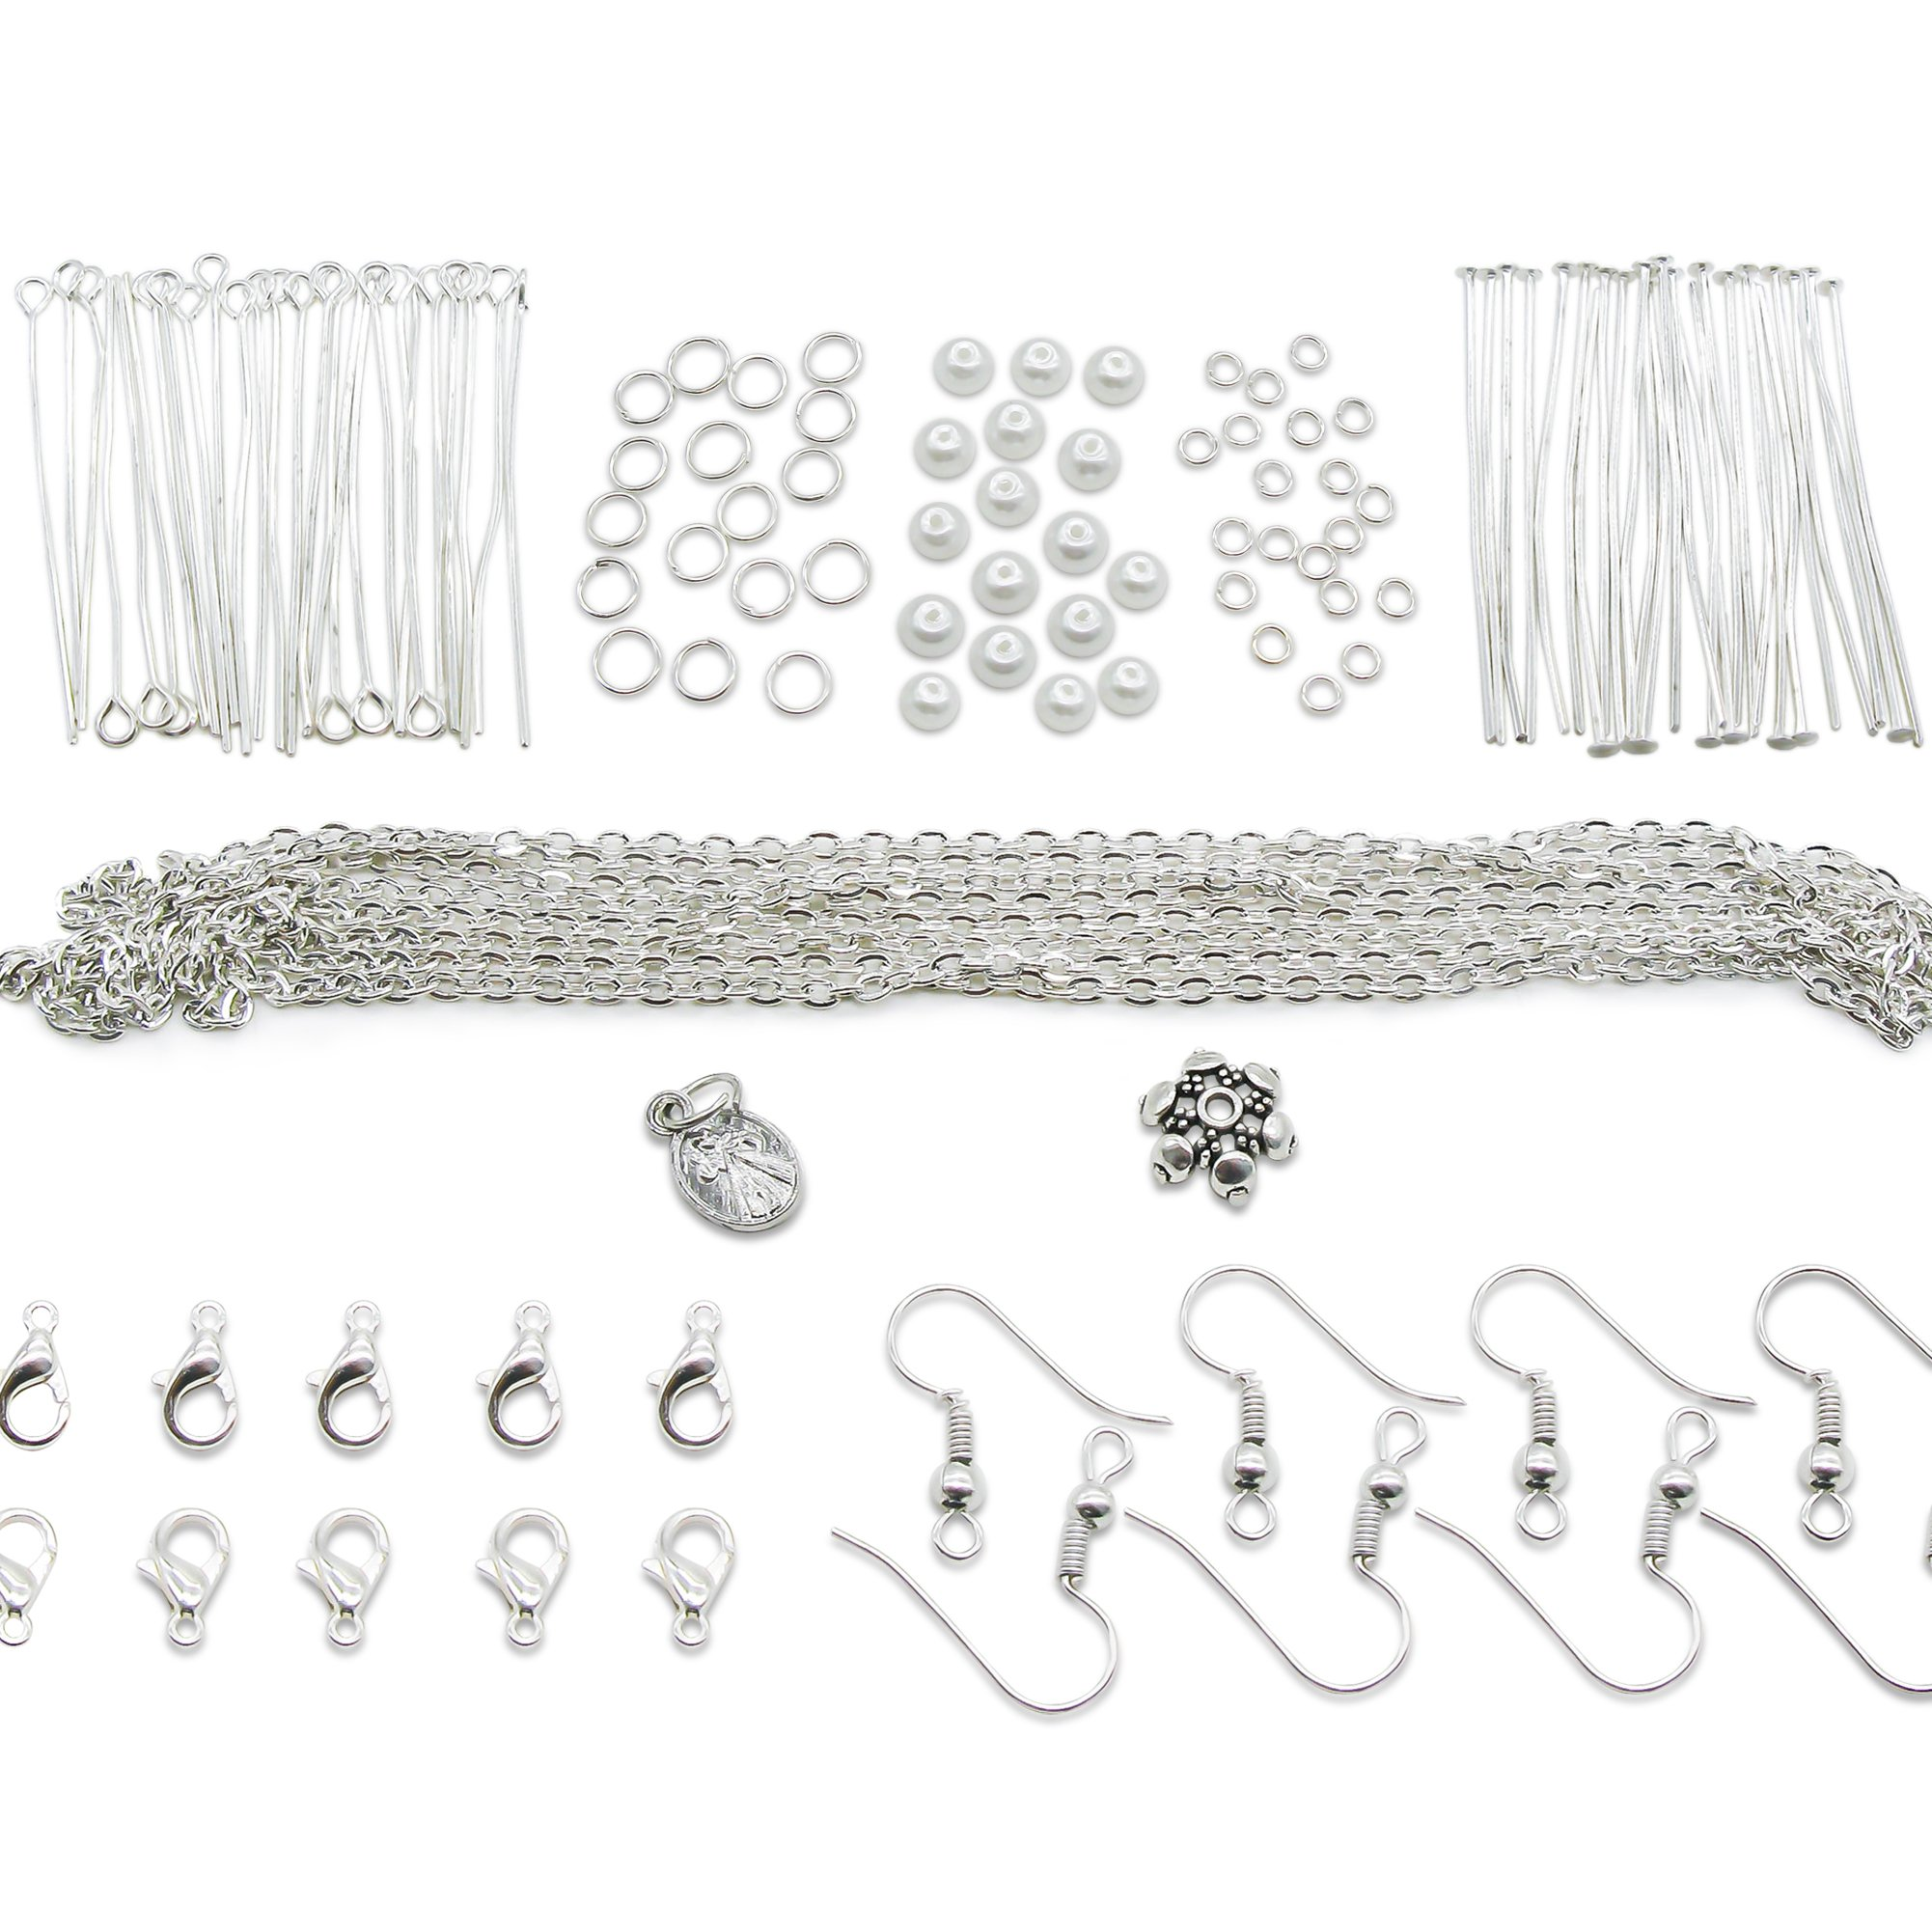 Get Quotations Toaob Silver Jewelery Making Starter Kits Findings Beads Chains Clasps Earring Hook Jump Rings Pins Accessories